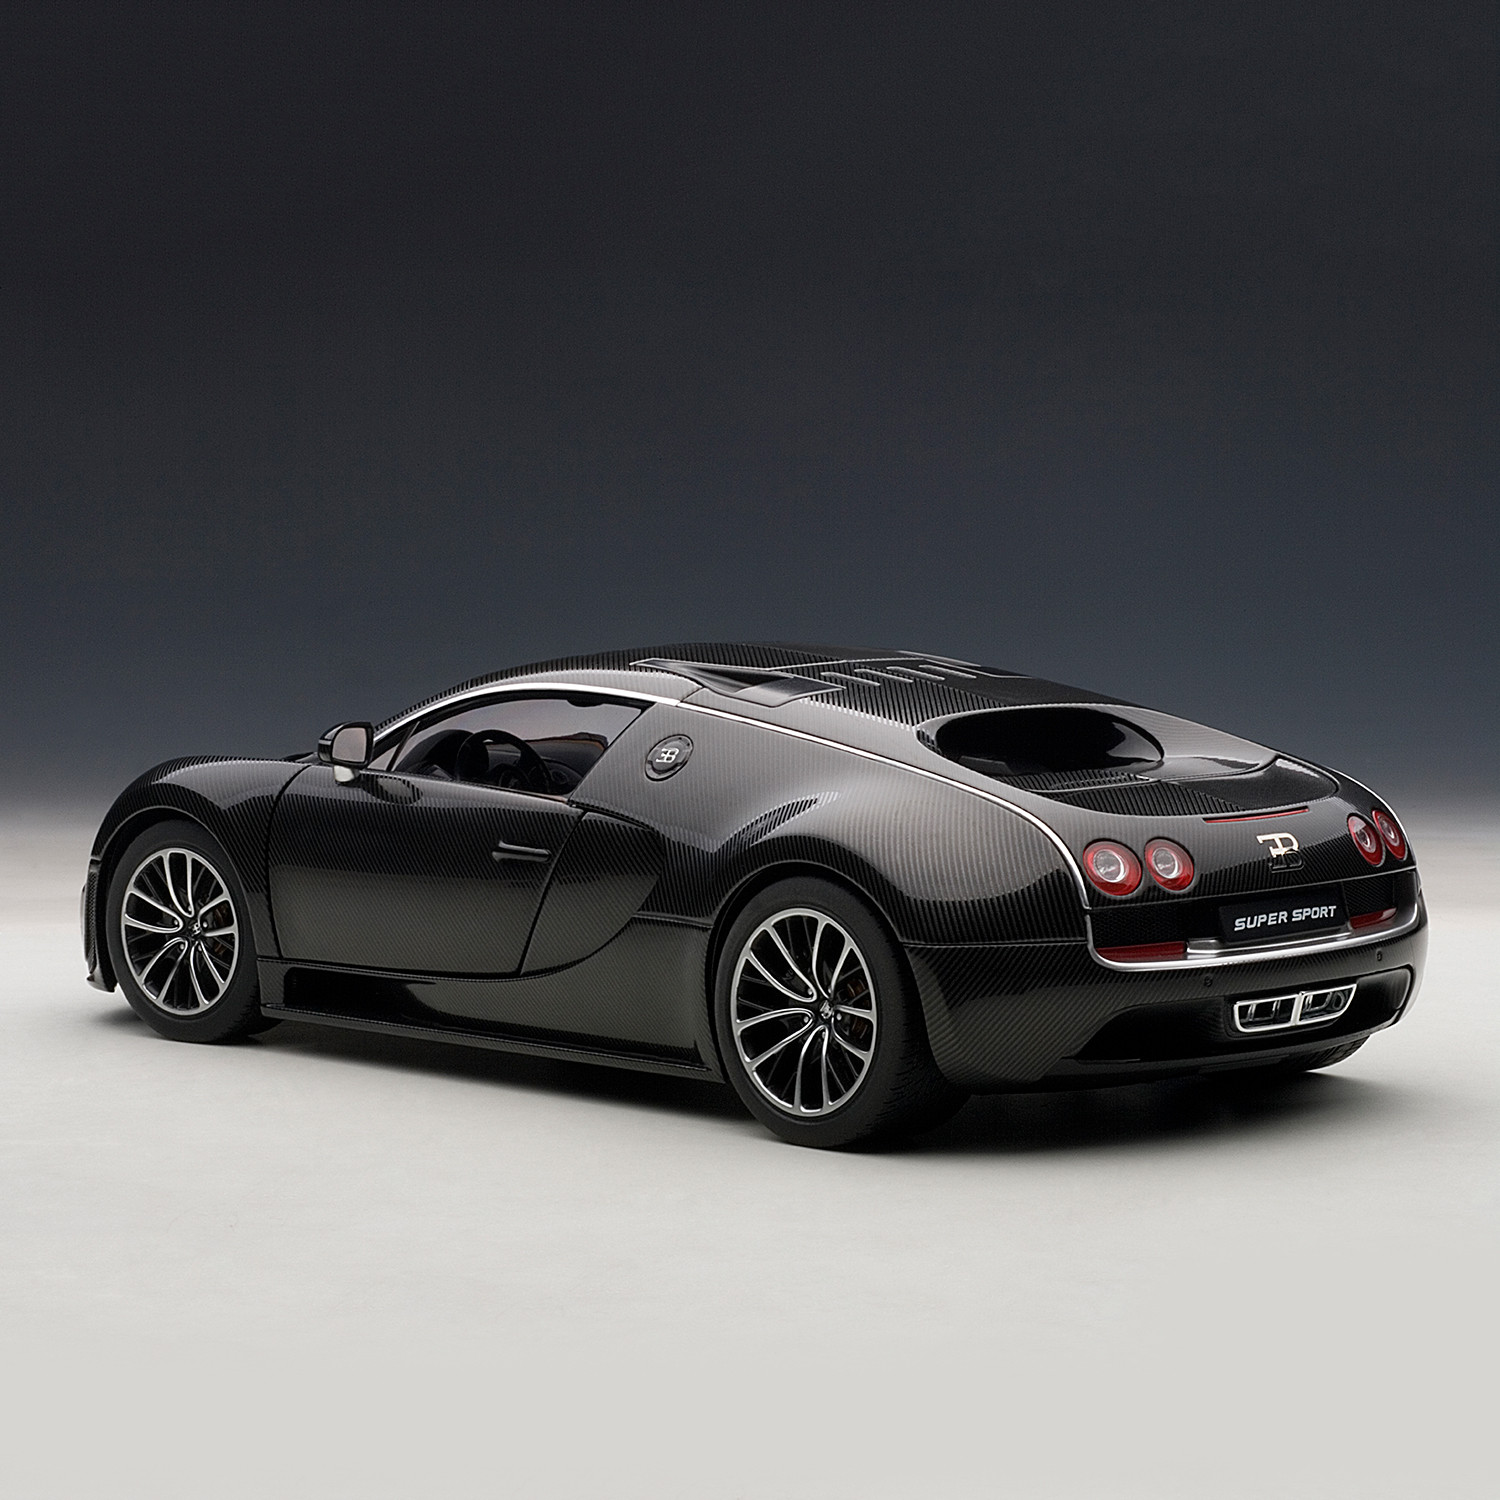 bugatti veyron super sport black orange auto art touch of modern. Black Bedroom Furniture Sets. Home Design Ideas